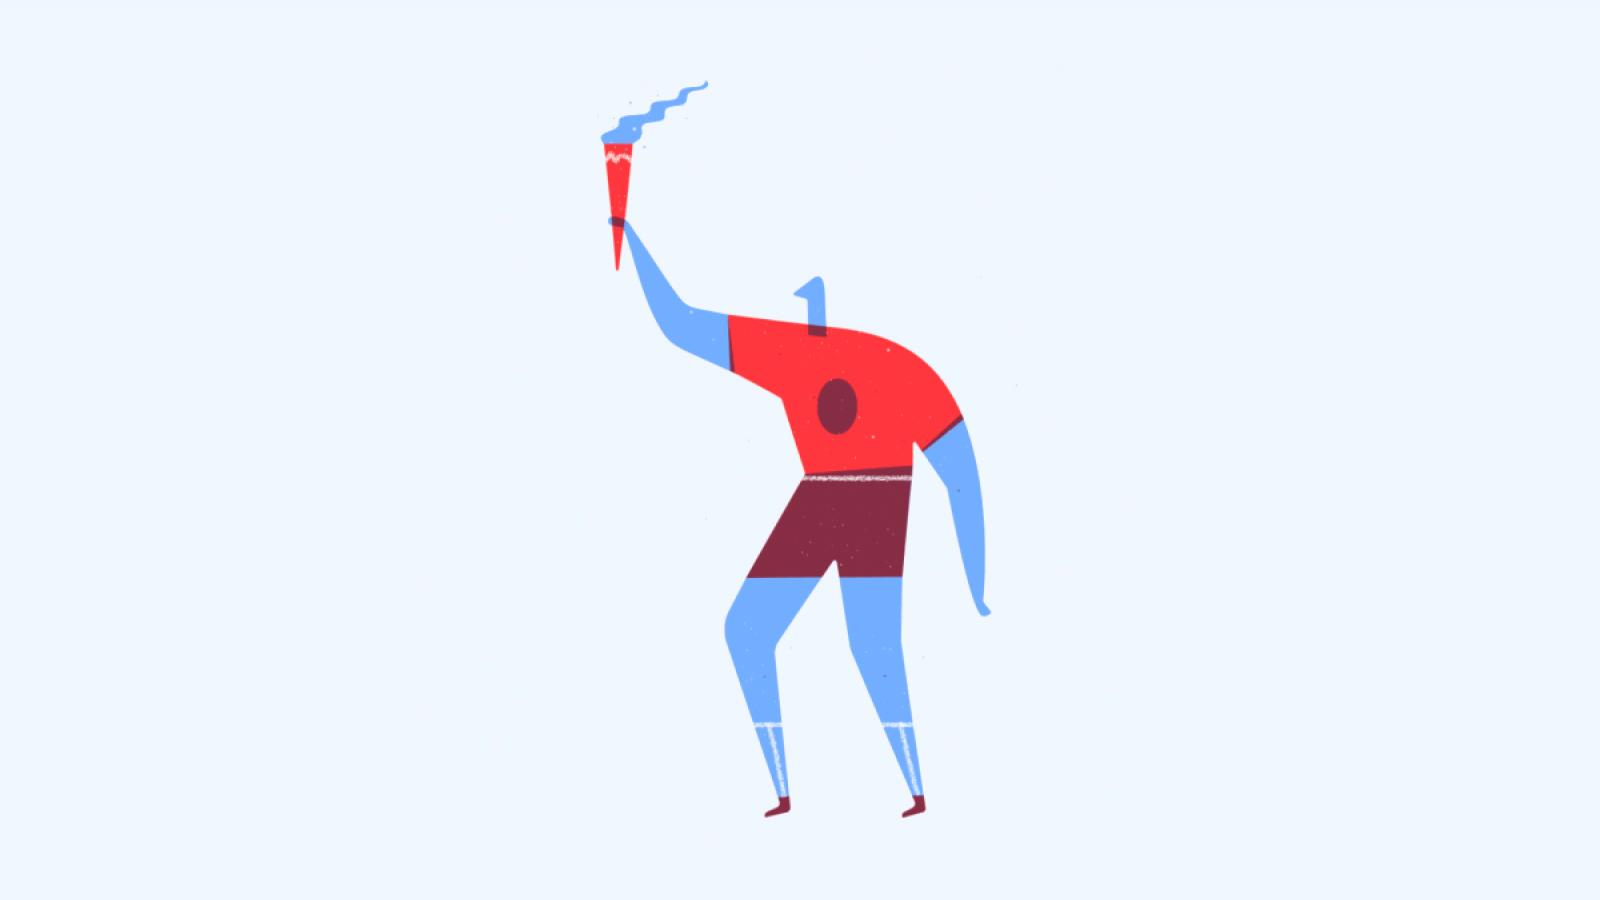 Motion Design and Illustration: Loopy by MUTI